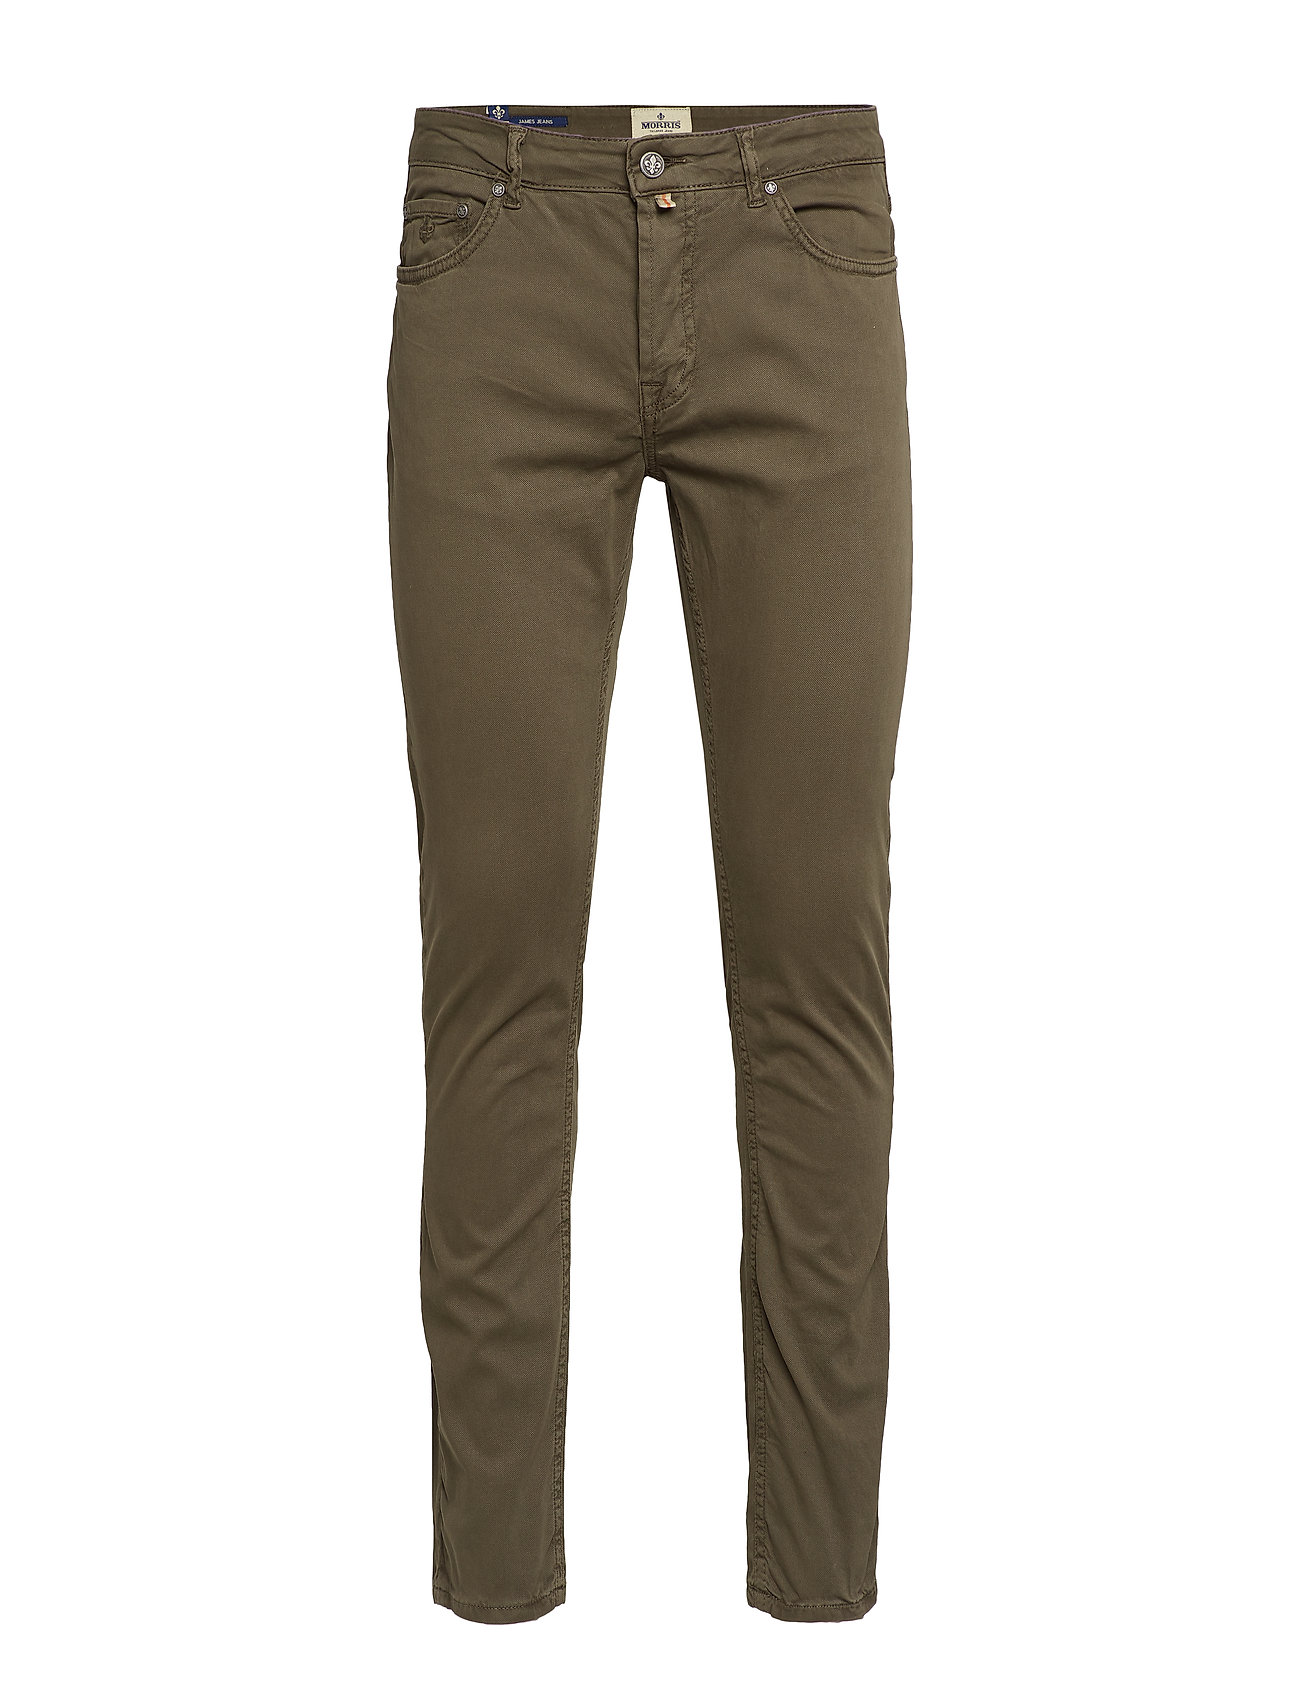 Morris James Textured 5-pkt - OLIVE